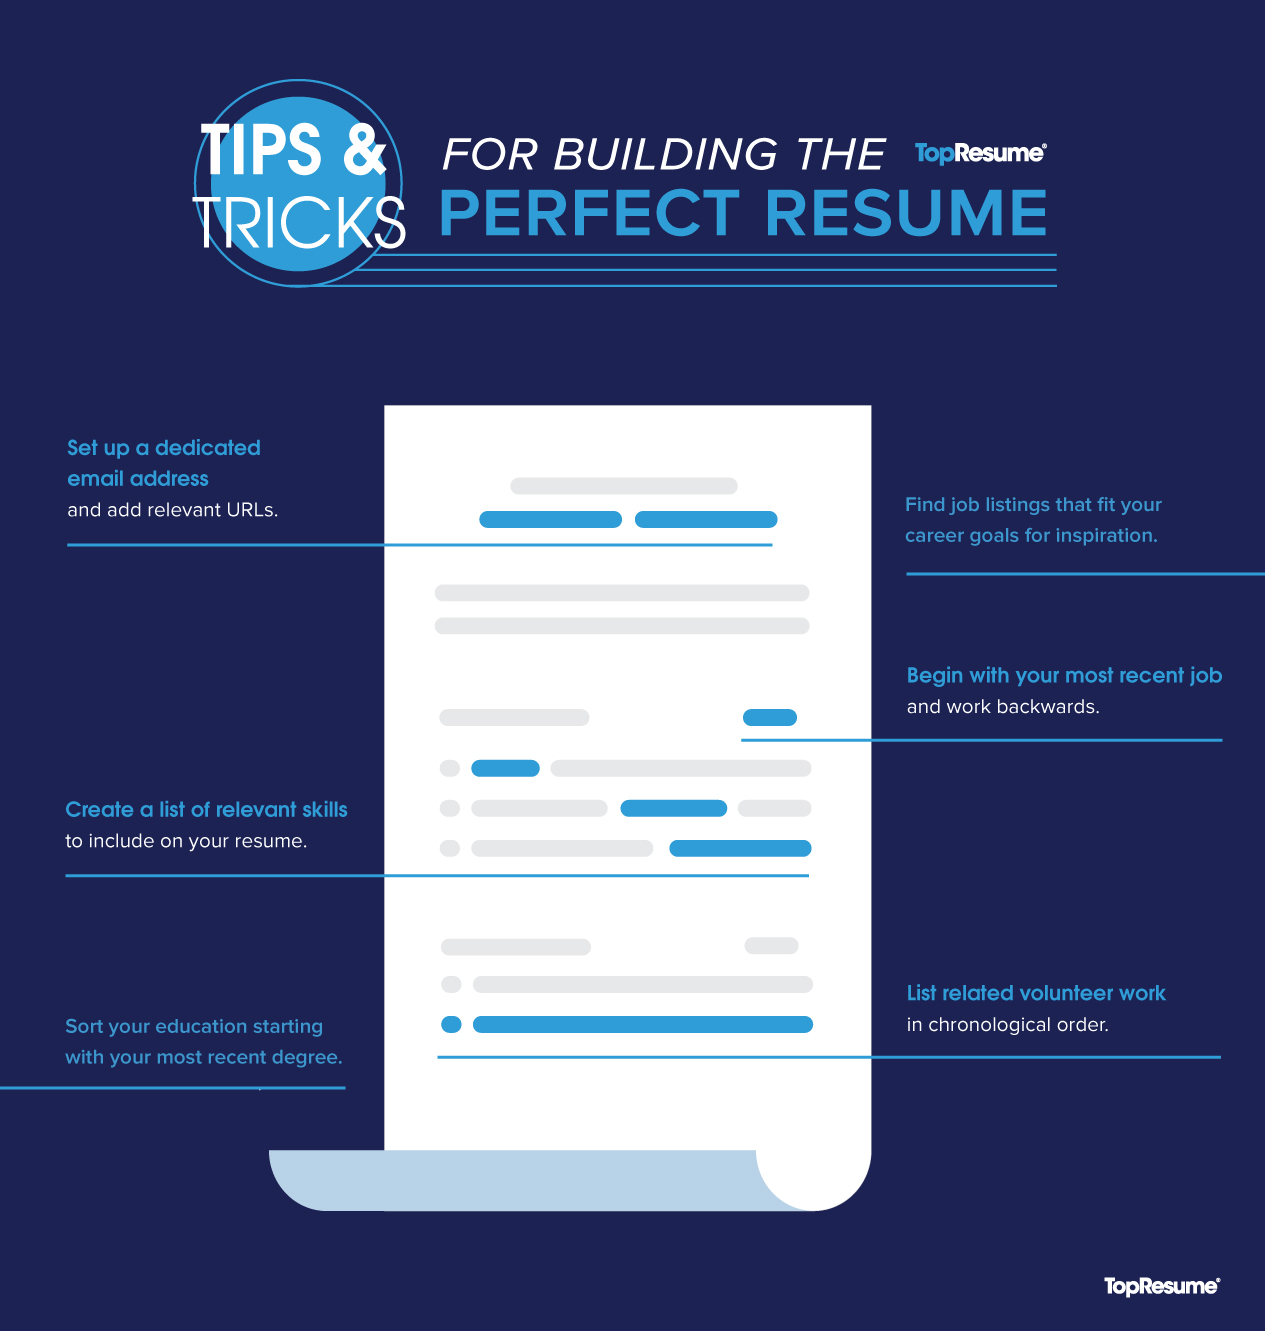 steps to writing the perfect resume topresume better 11stepsinfographic achievements Resume Writing A Better Resume